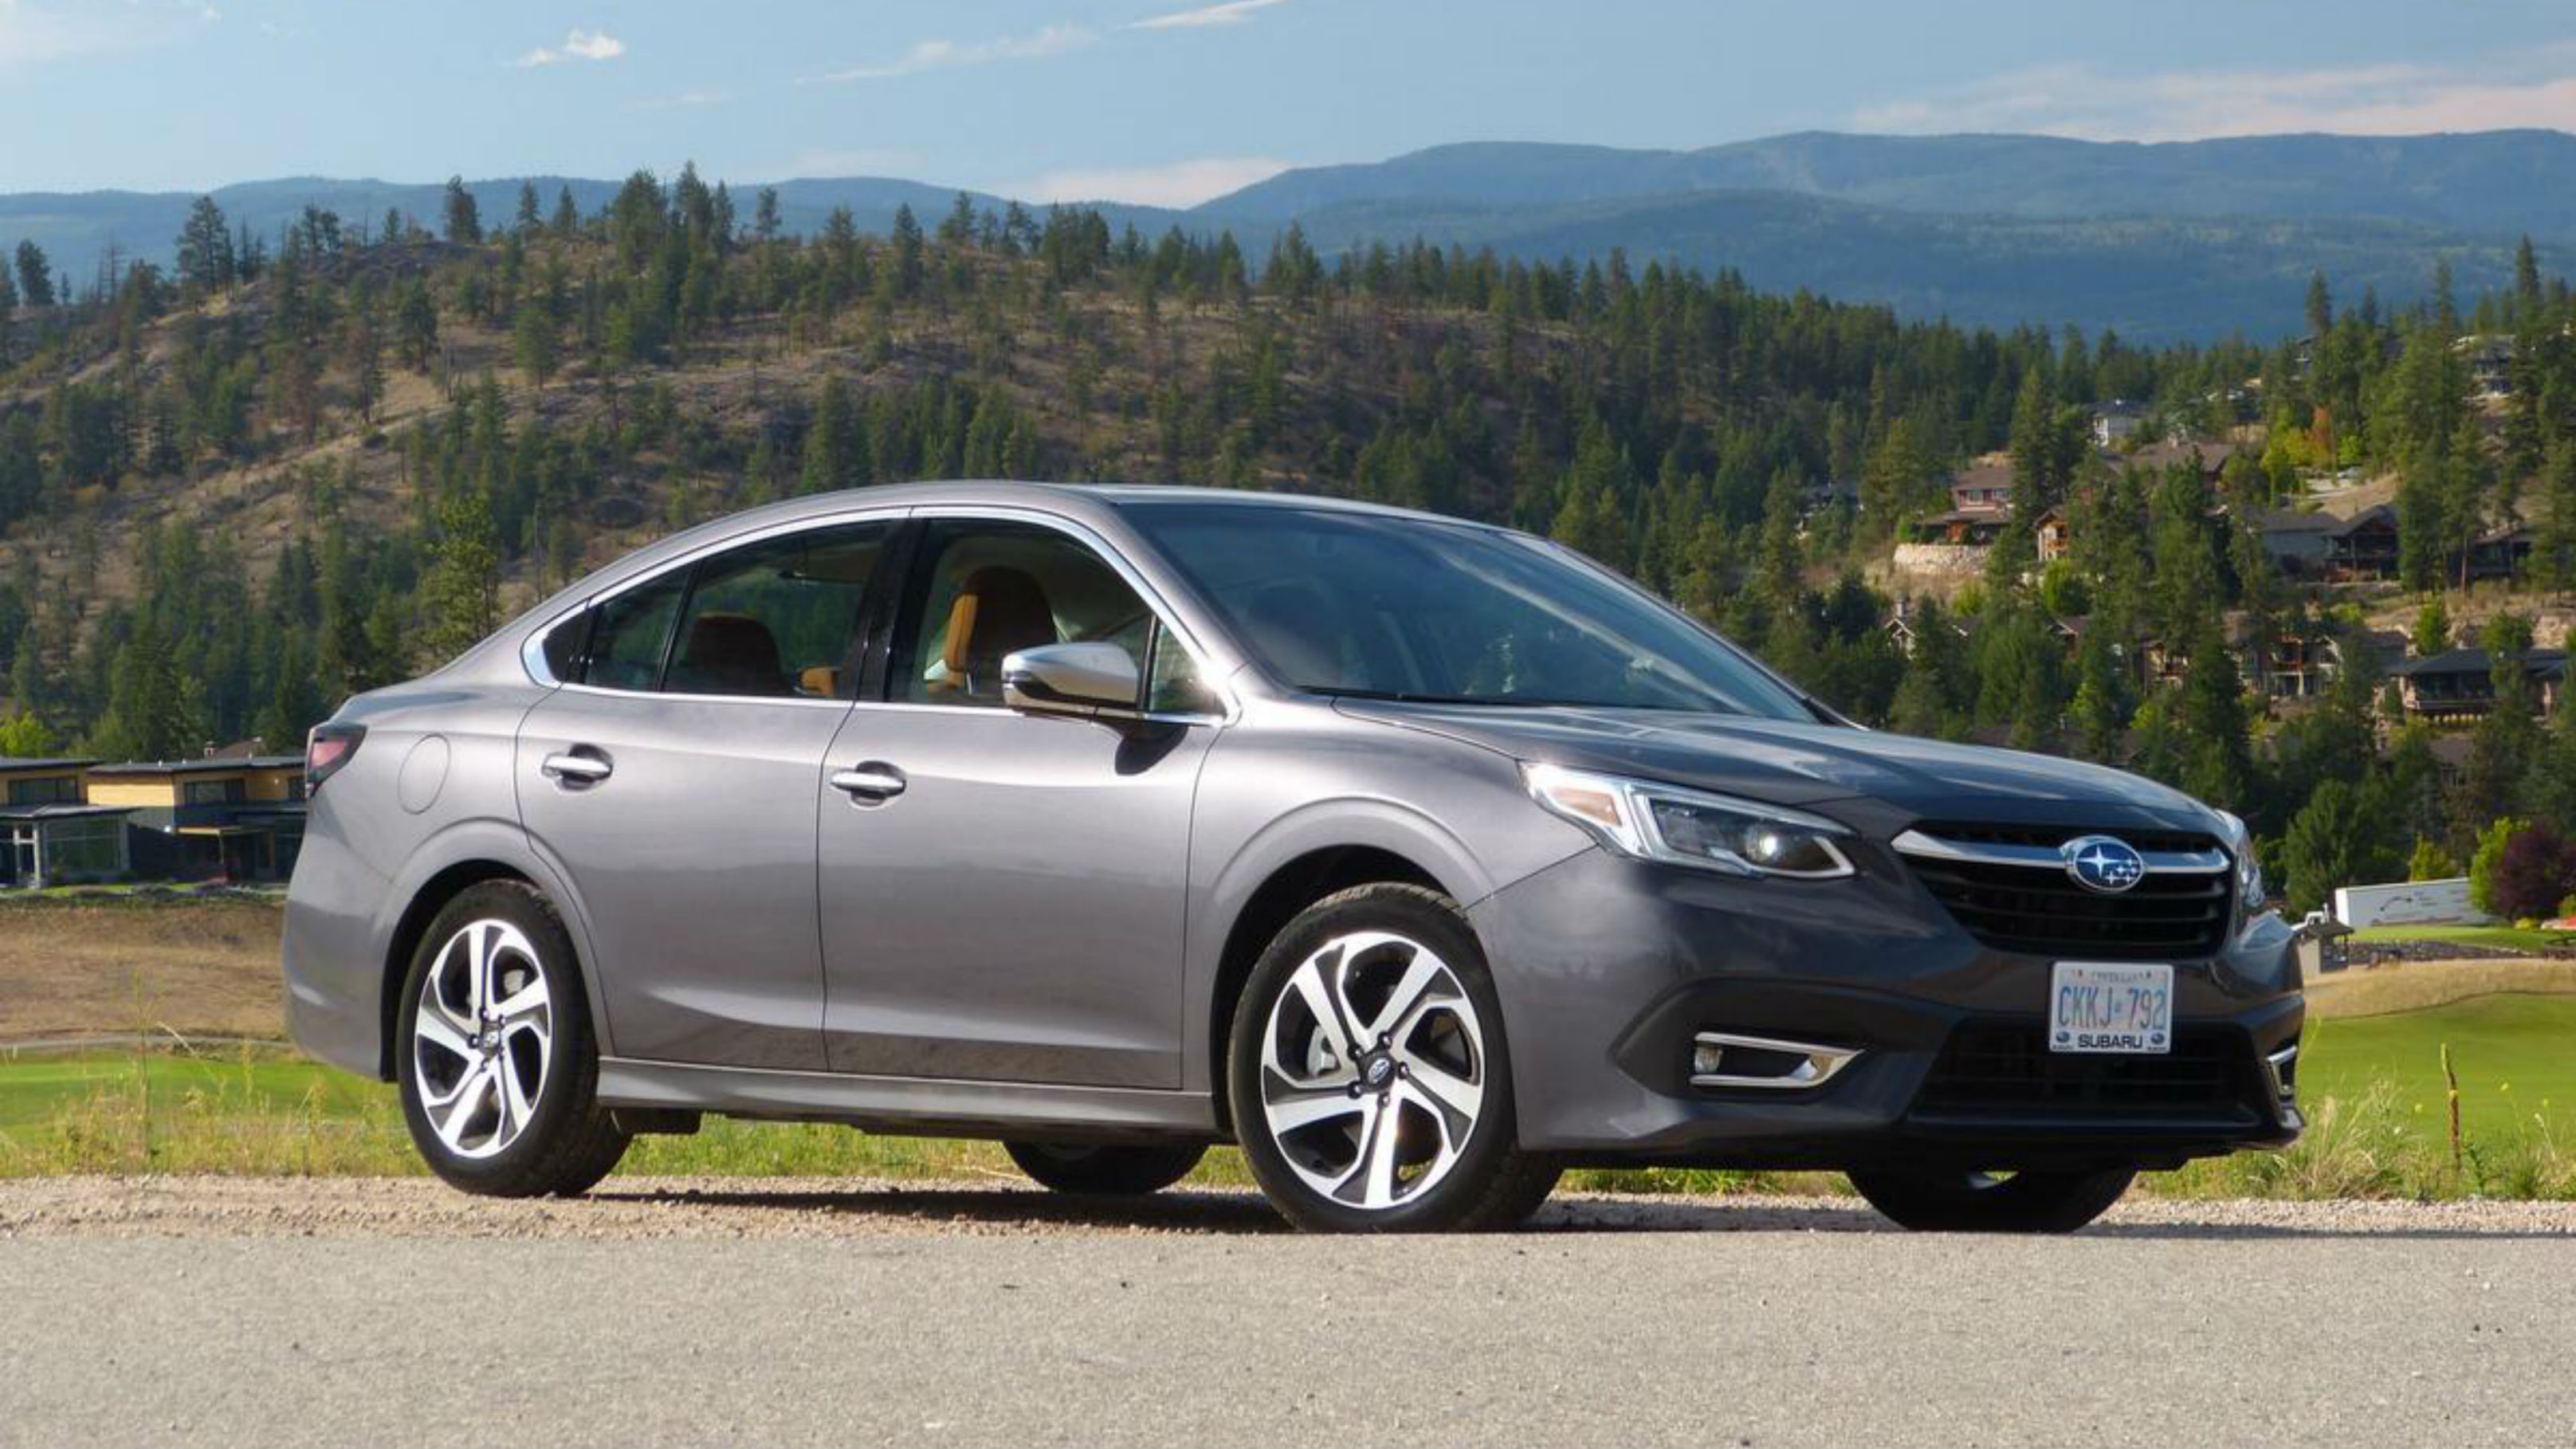 13 All New The Subaru Legacy Gt 2019 Performance Review And Release Date